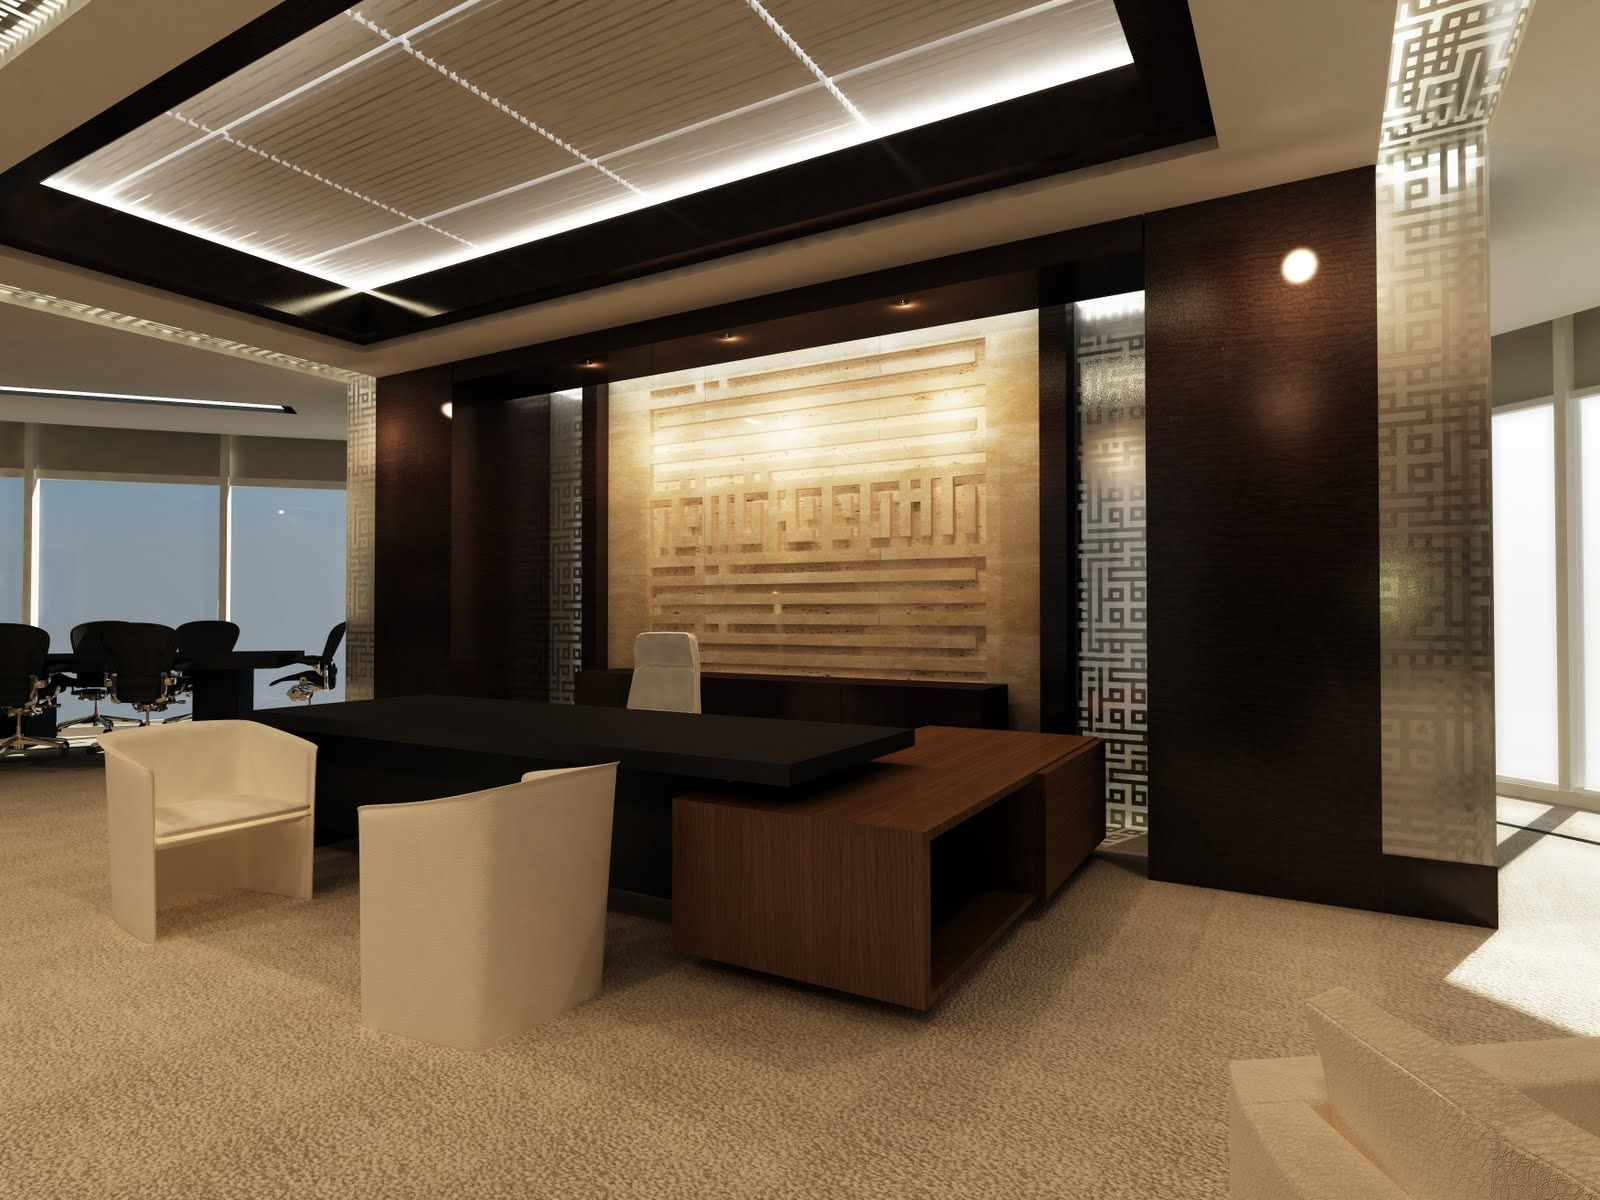 Office interior design intended for office interior design In room designs